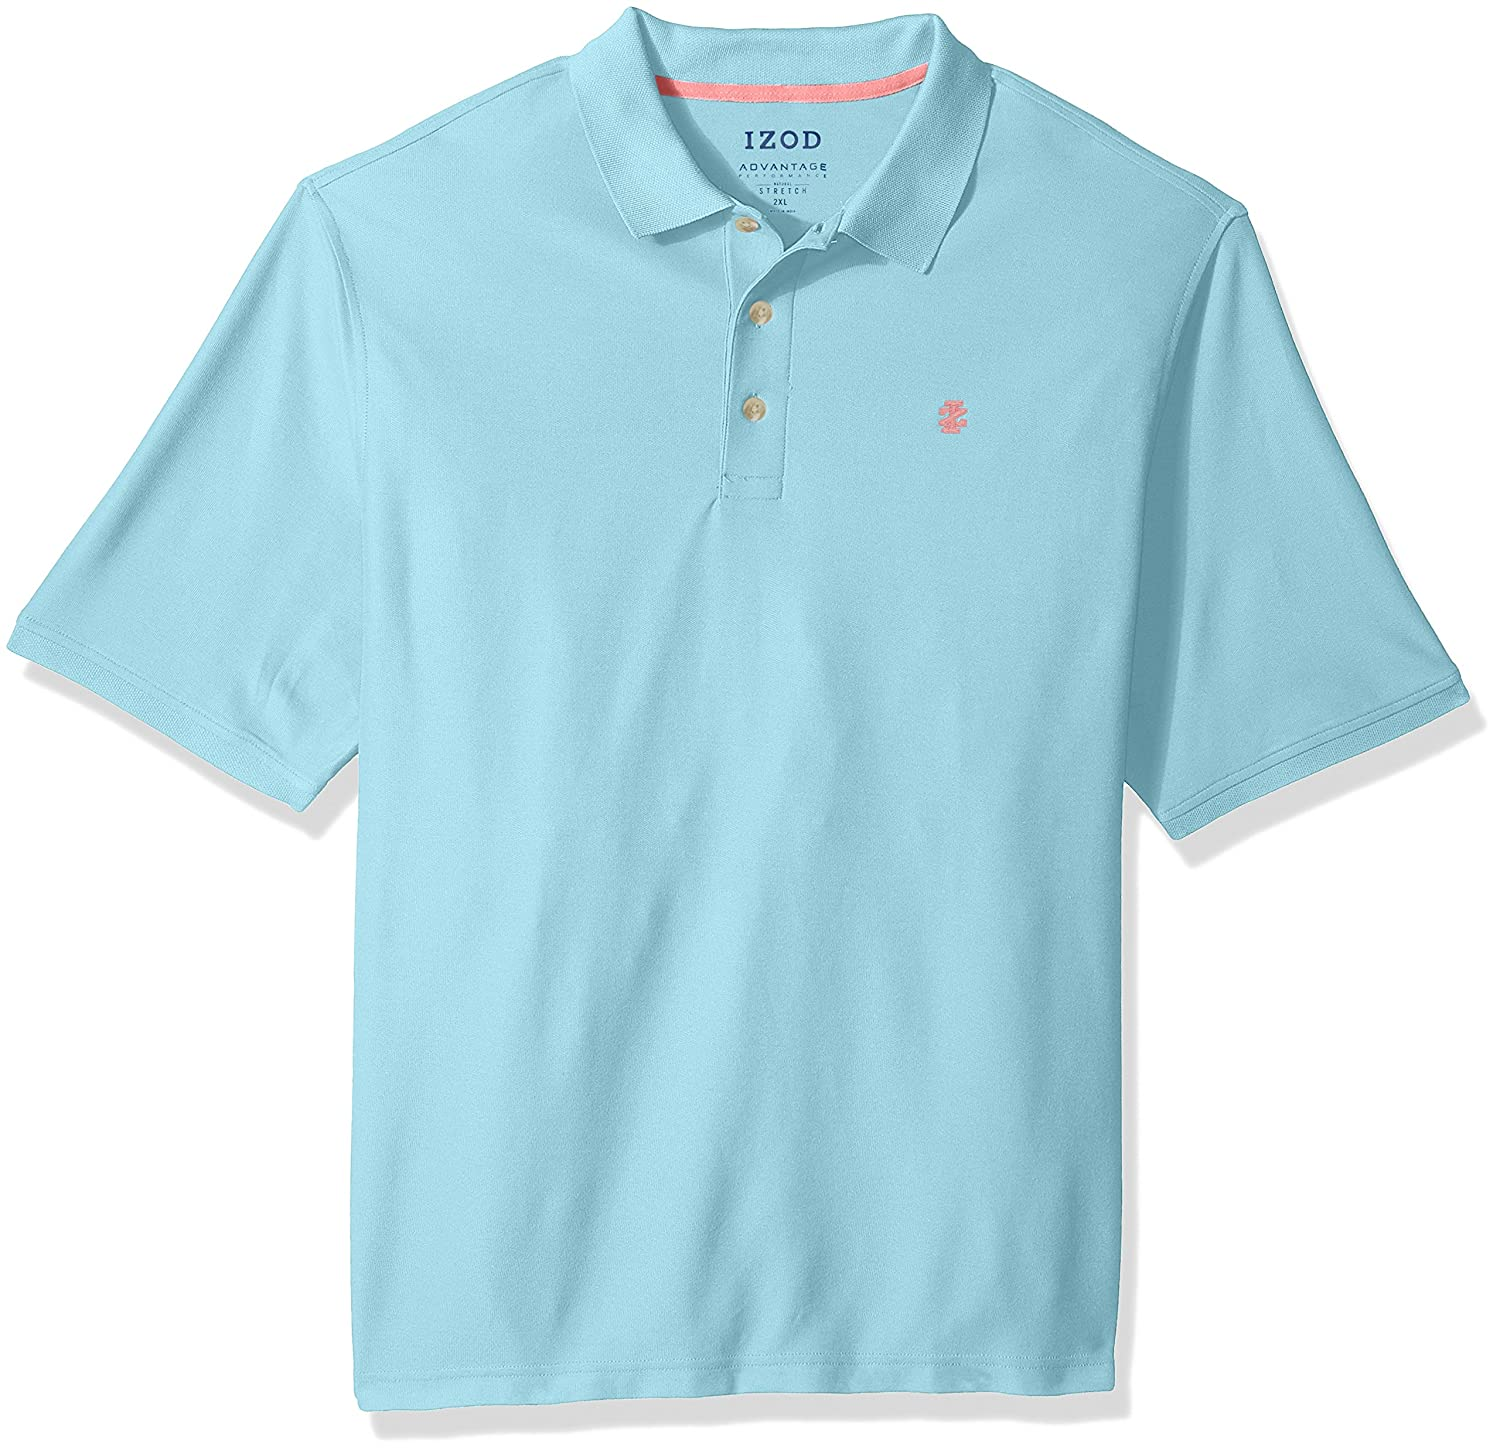 Izod Mens Big-Tall Big and Tall Advantage Performance Solid Polo